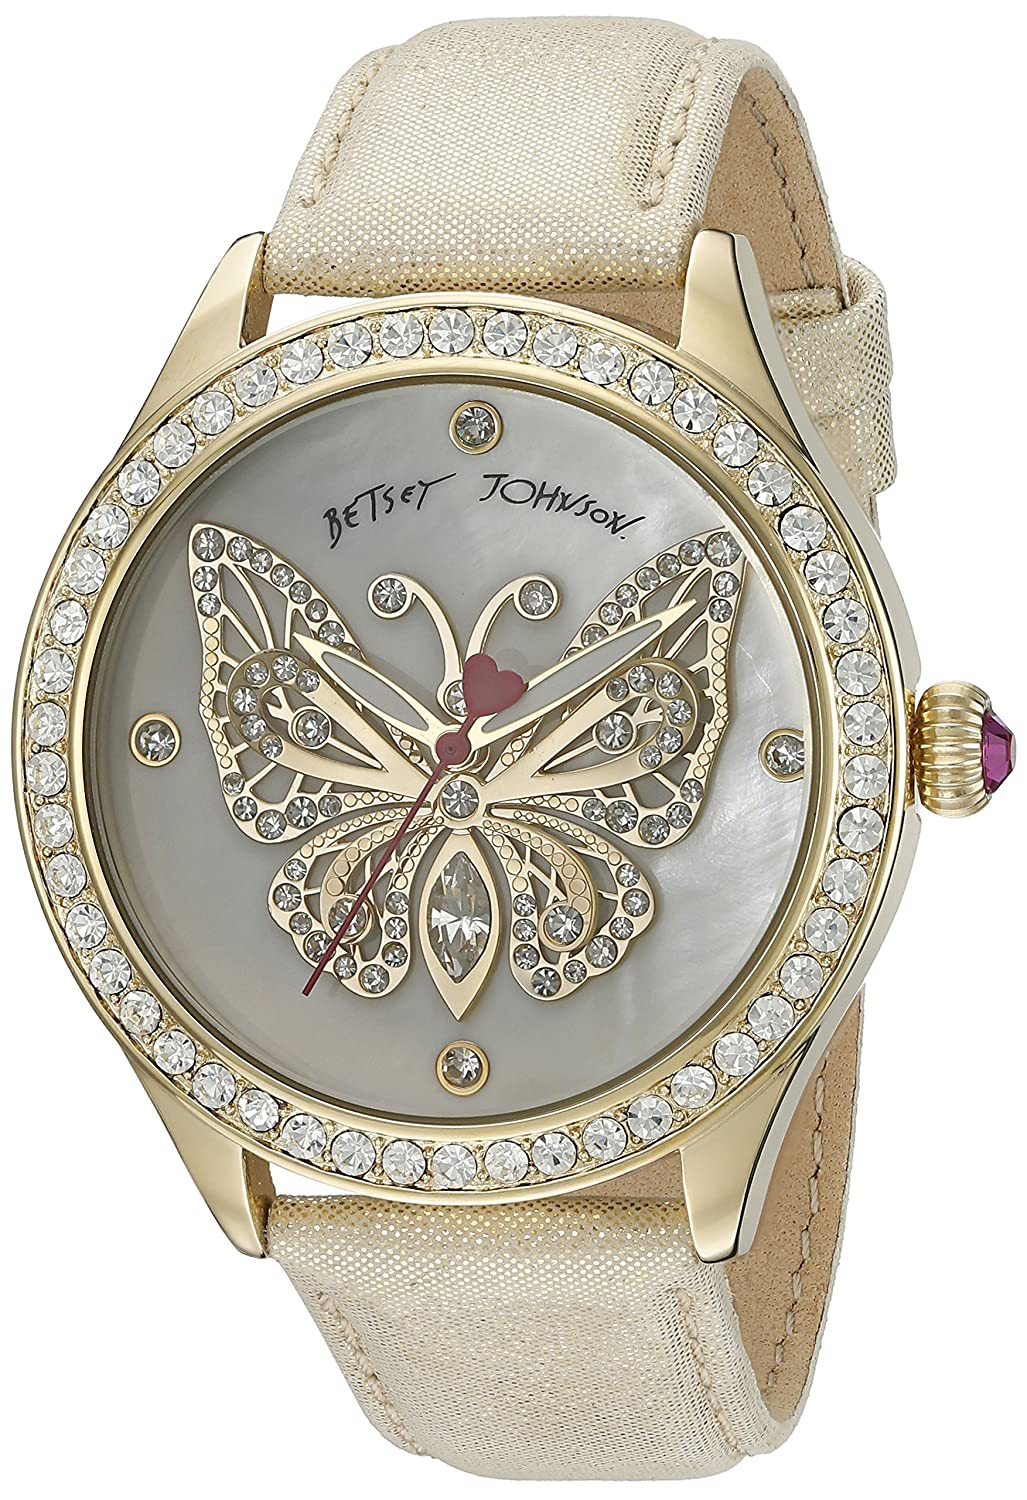 Betsey Johnson Women's BJ00517-11 Analog Display Quartz Gold Watch